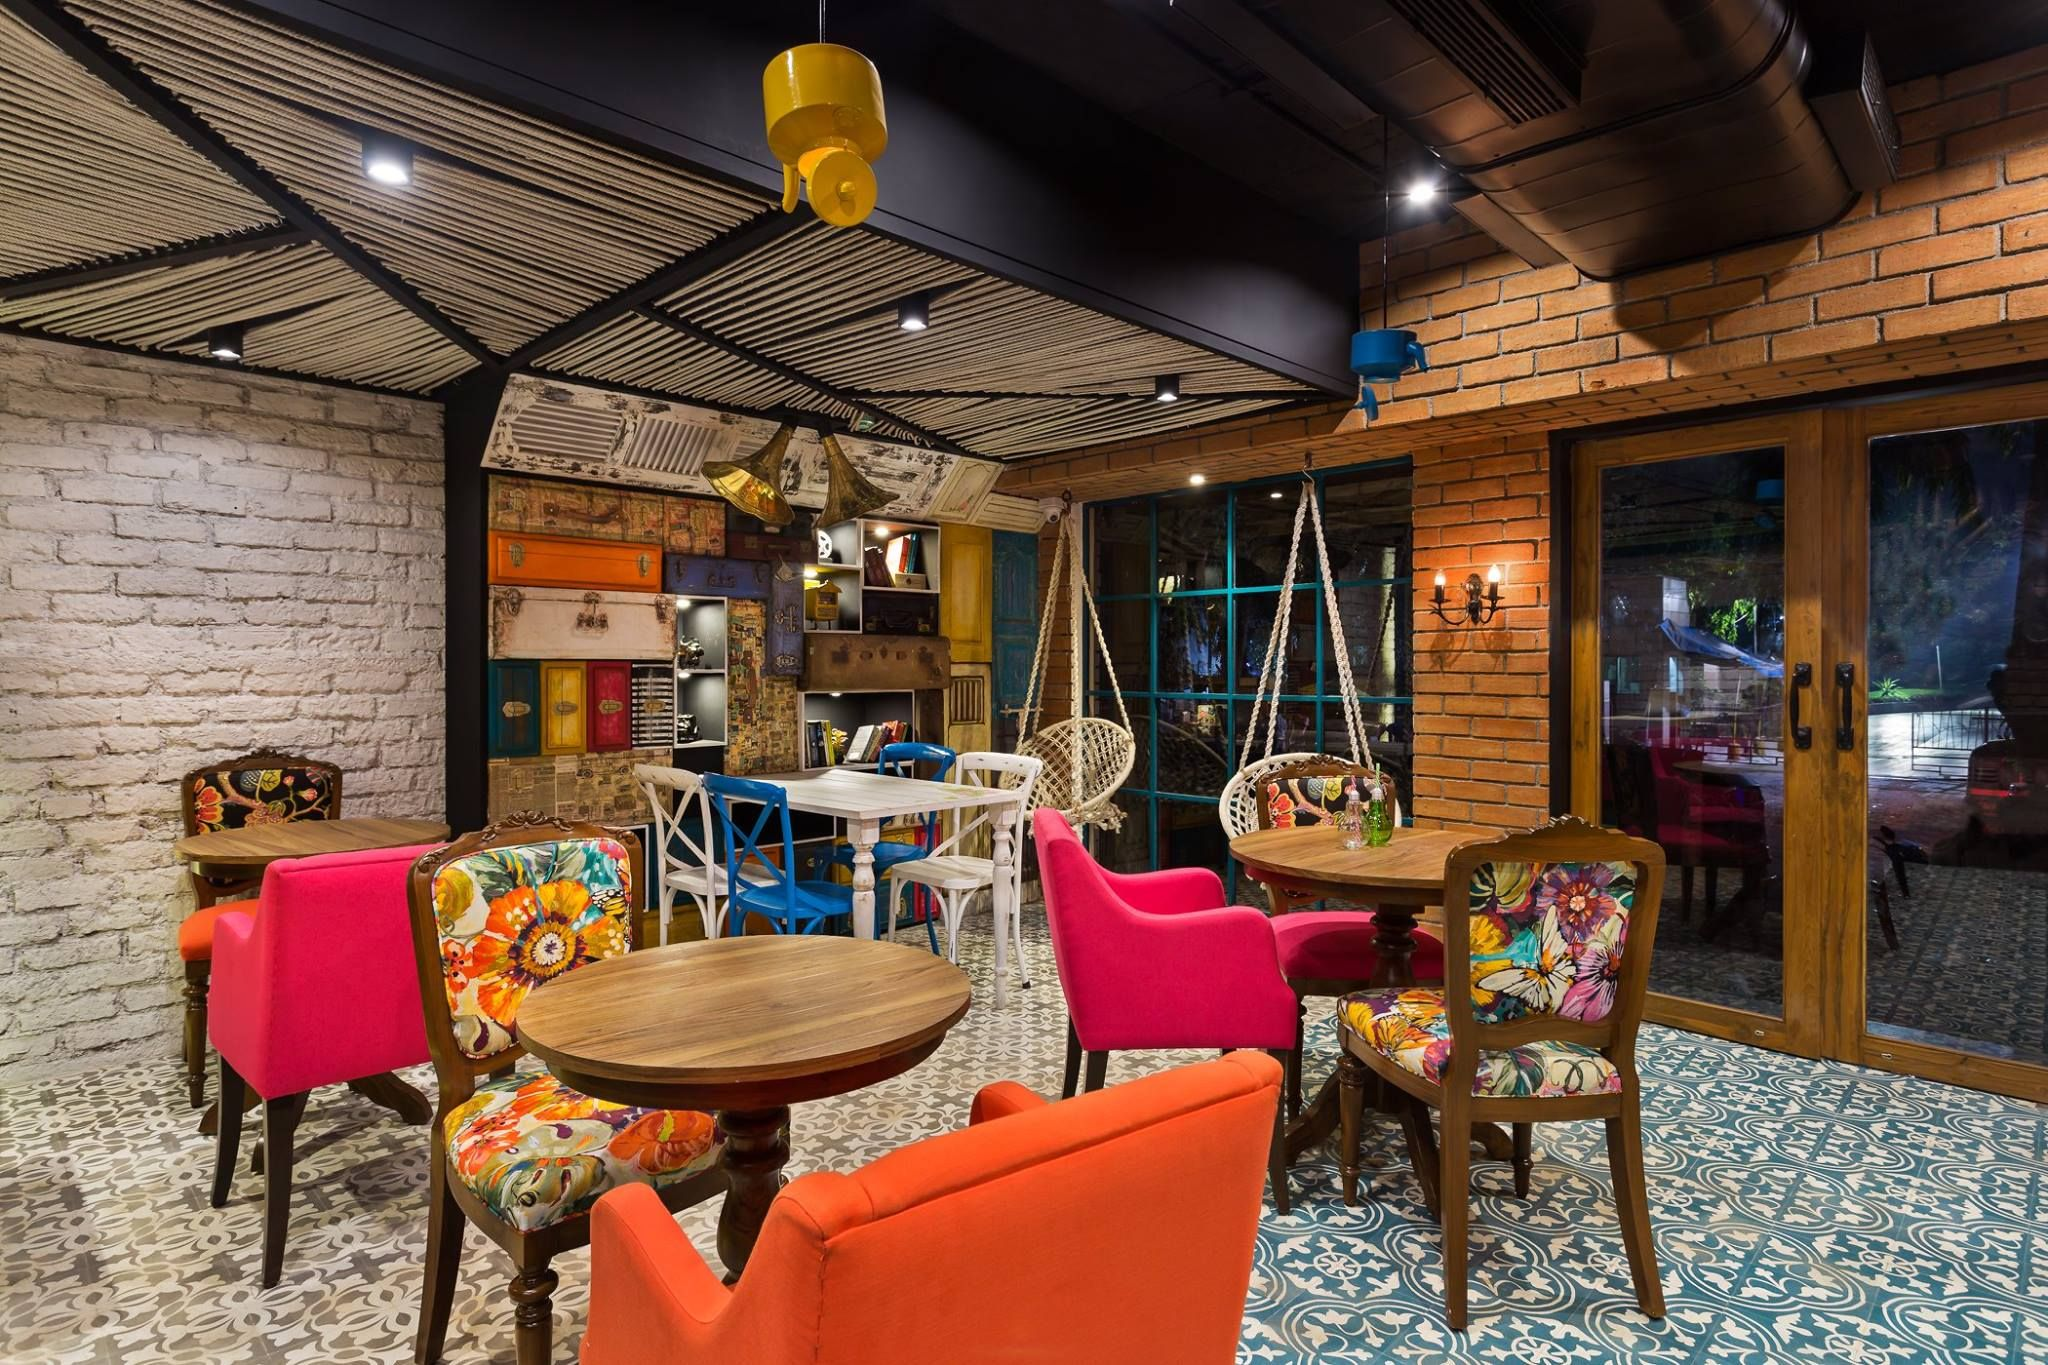 A Rustic Vintage Themed Cafe From The Use Of Loud Colours Against An Antique Background To The Use Of Kitchen Elements We Design Design Studio Color Balance